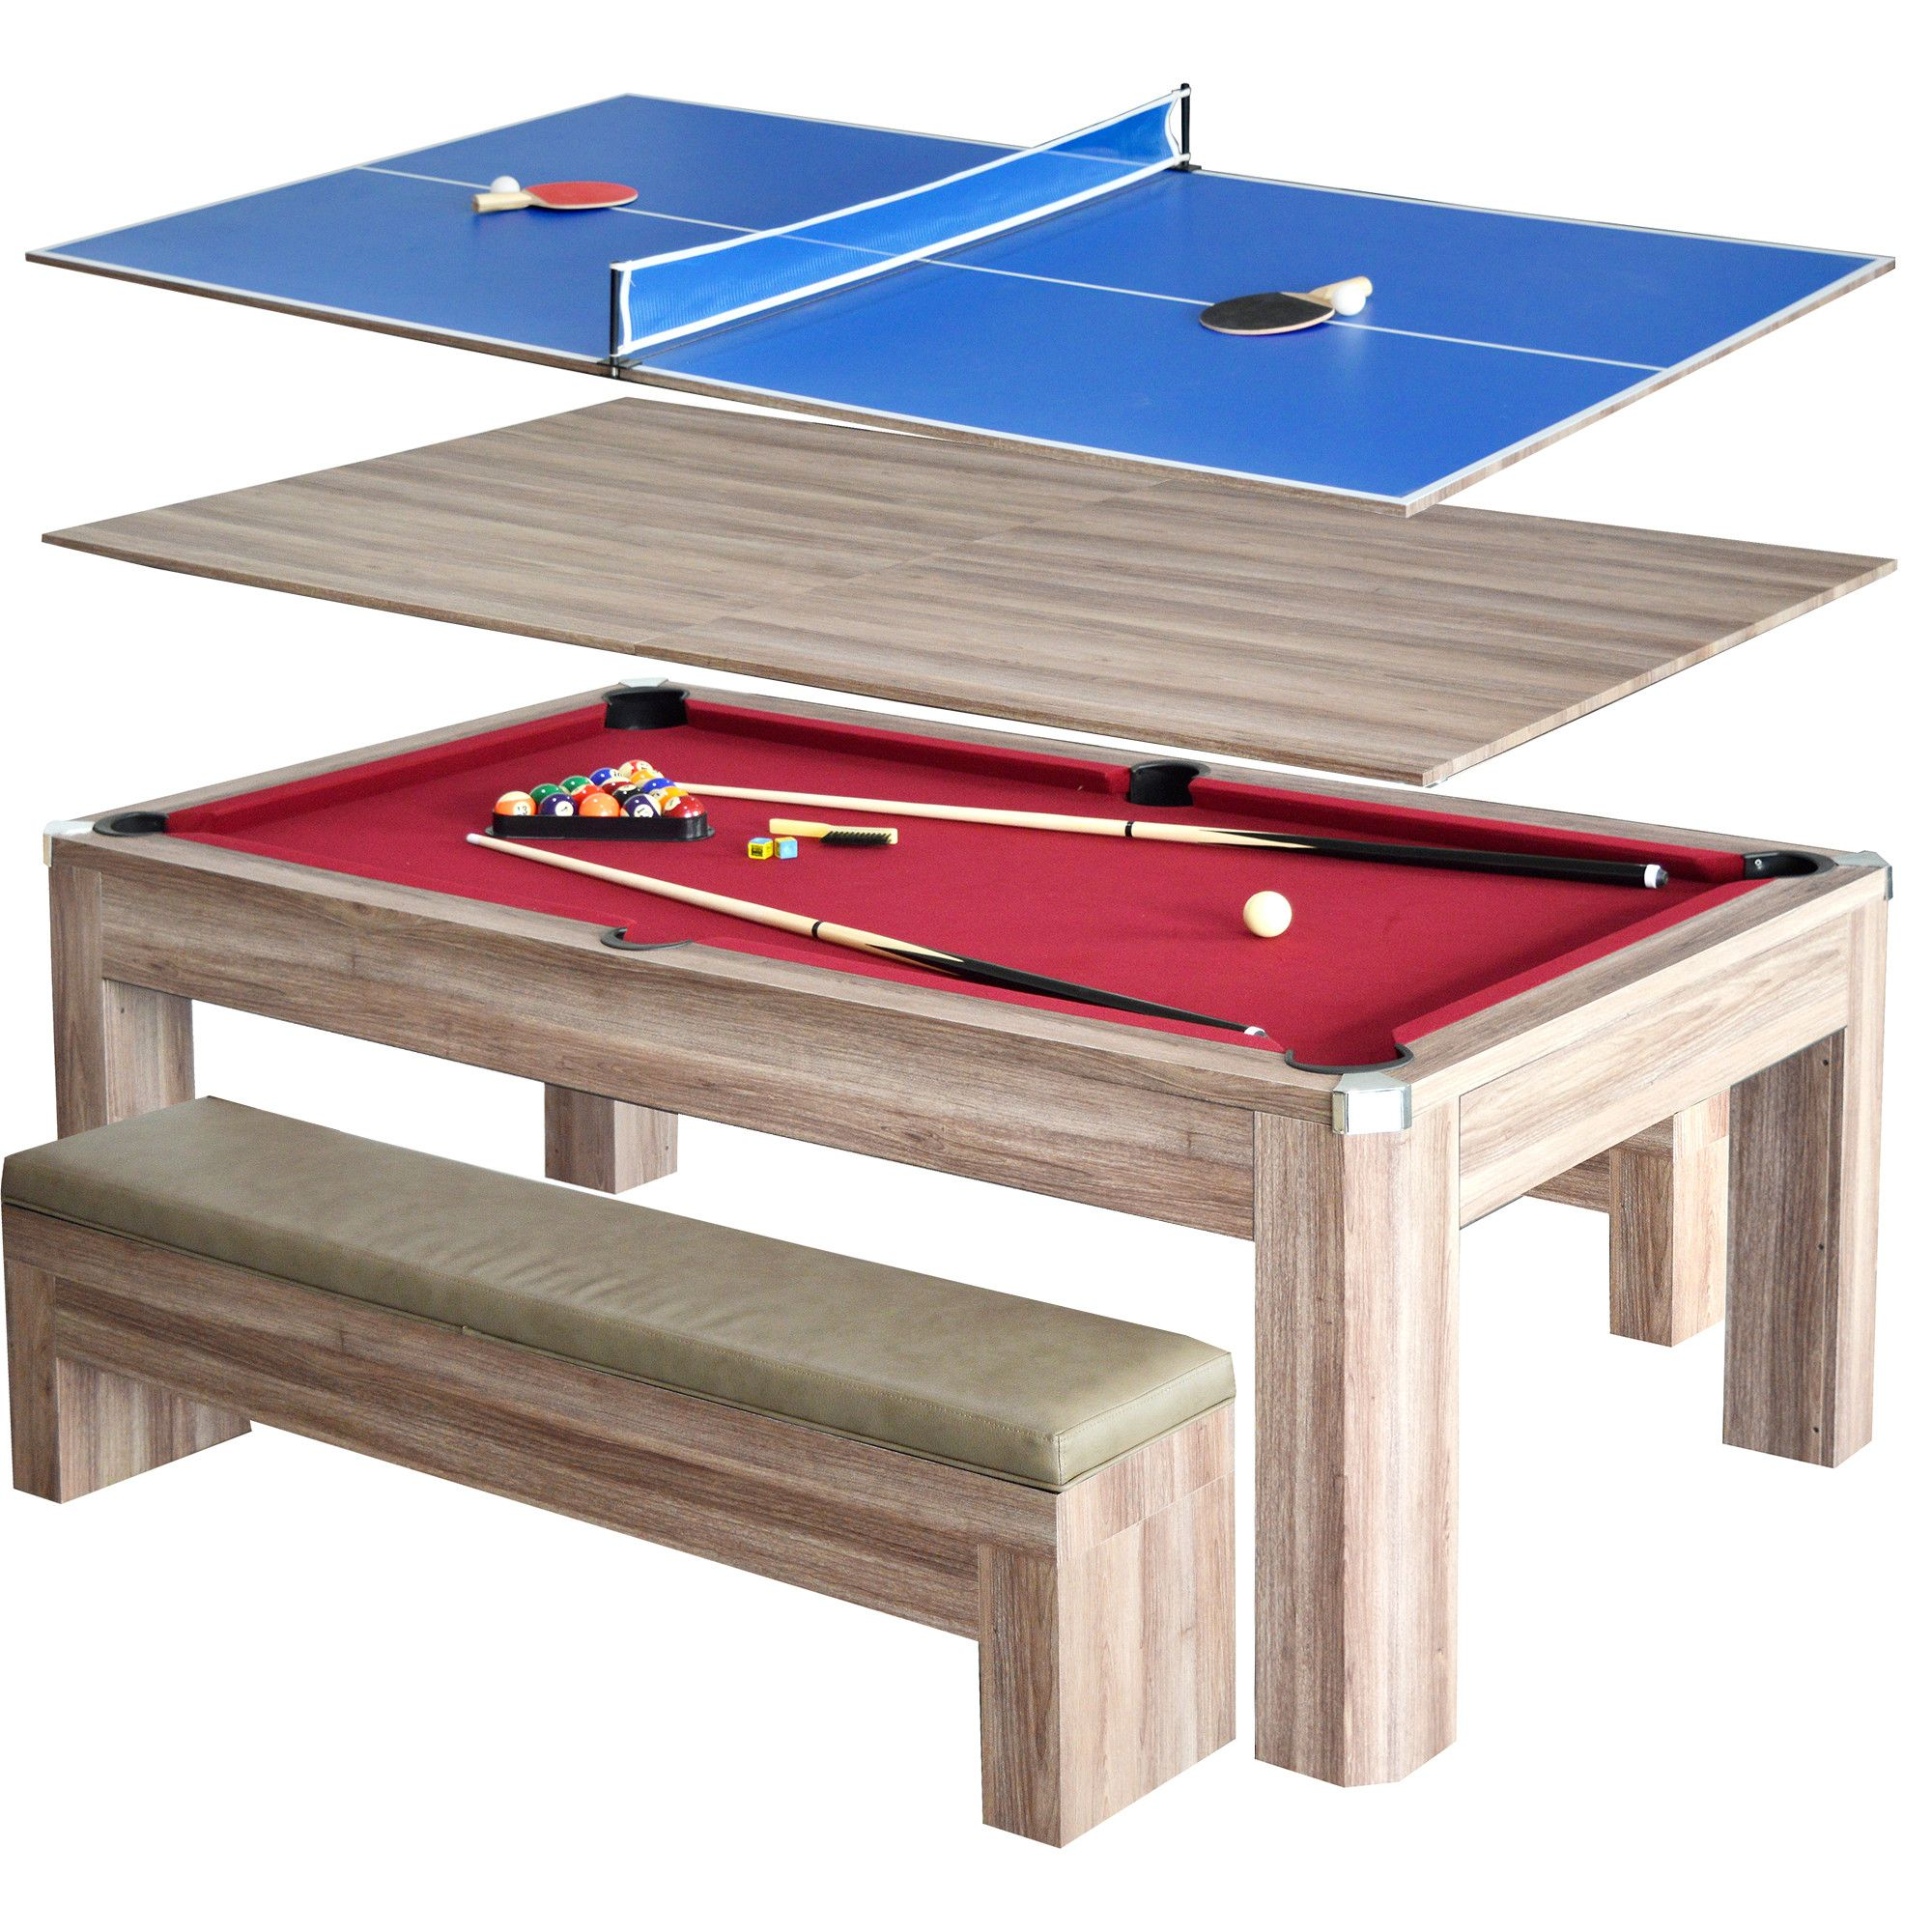 Newport 7 Pool Table Pool Table Dining Table Pool Table Room Pool Table Dining table pool table combinations